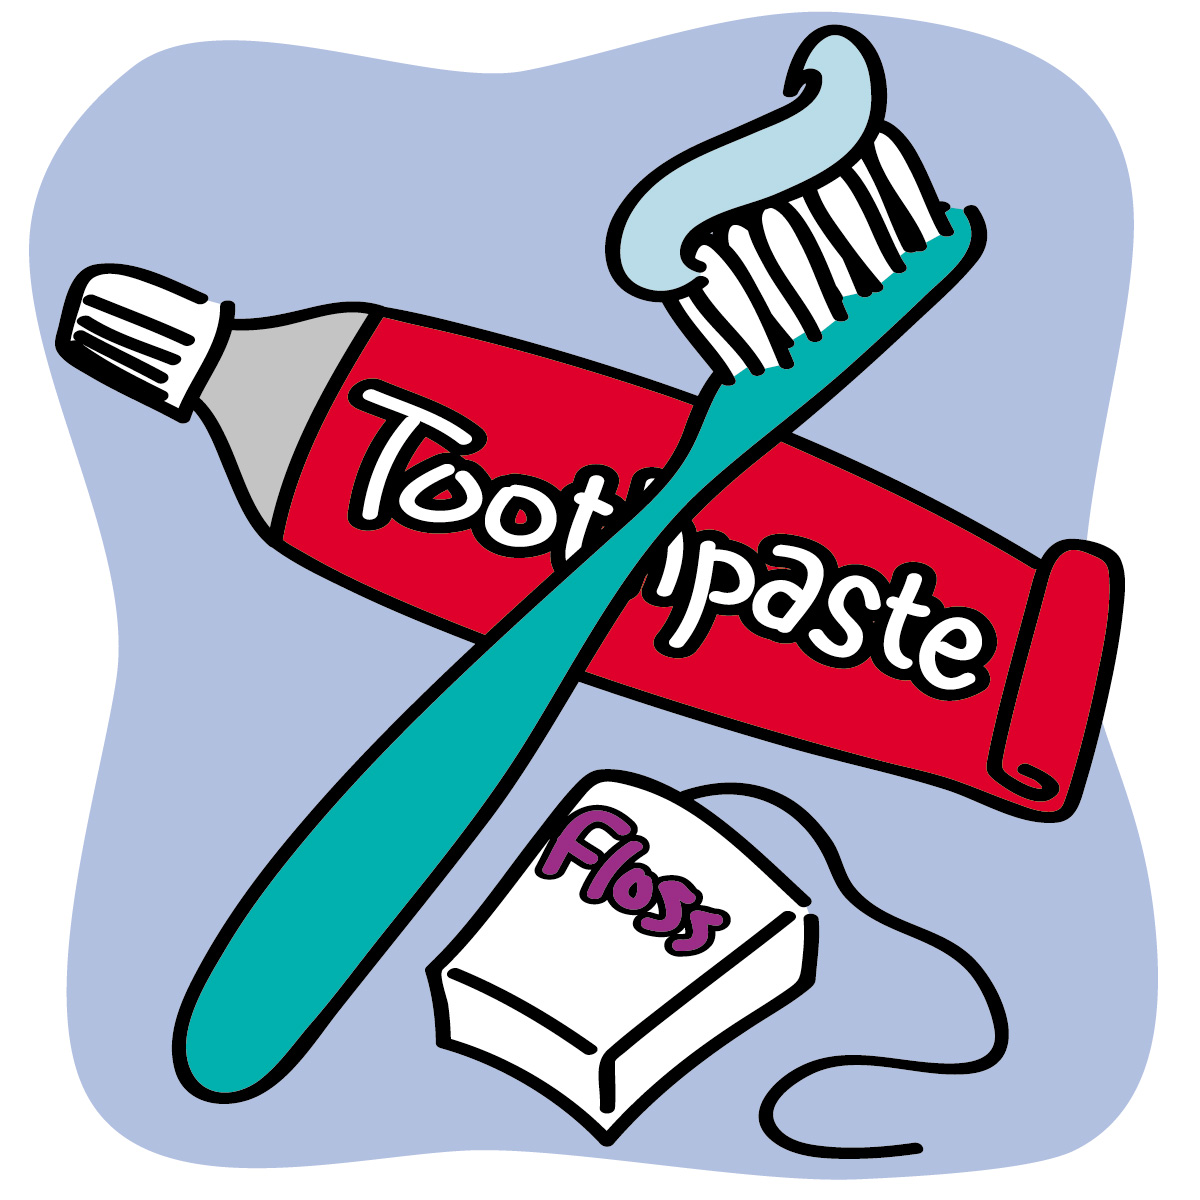 Tooth brush clipart picture library download Free Dentist Pictures, Download Free Clip Art, Free Clip Art ... picture library download